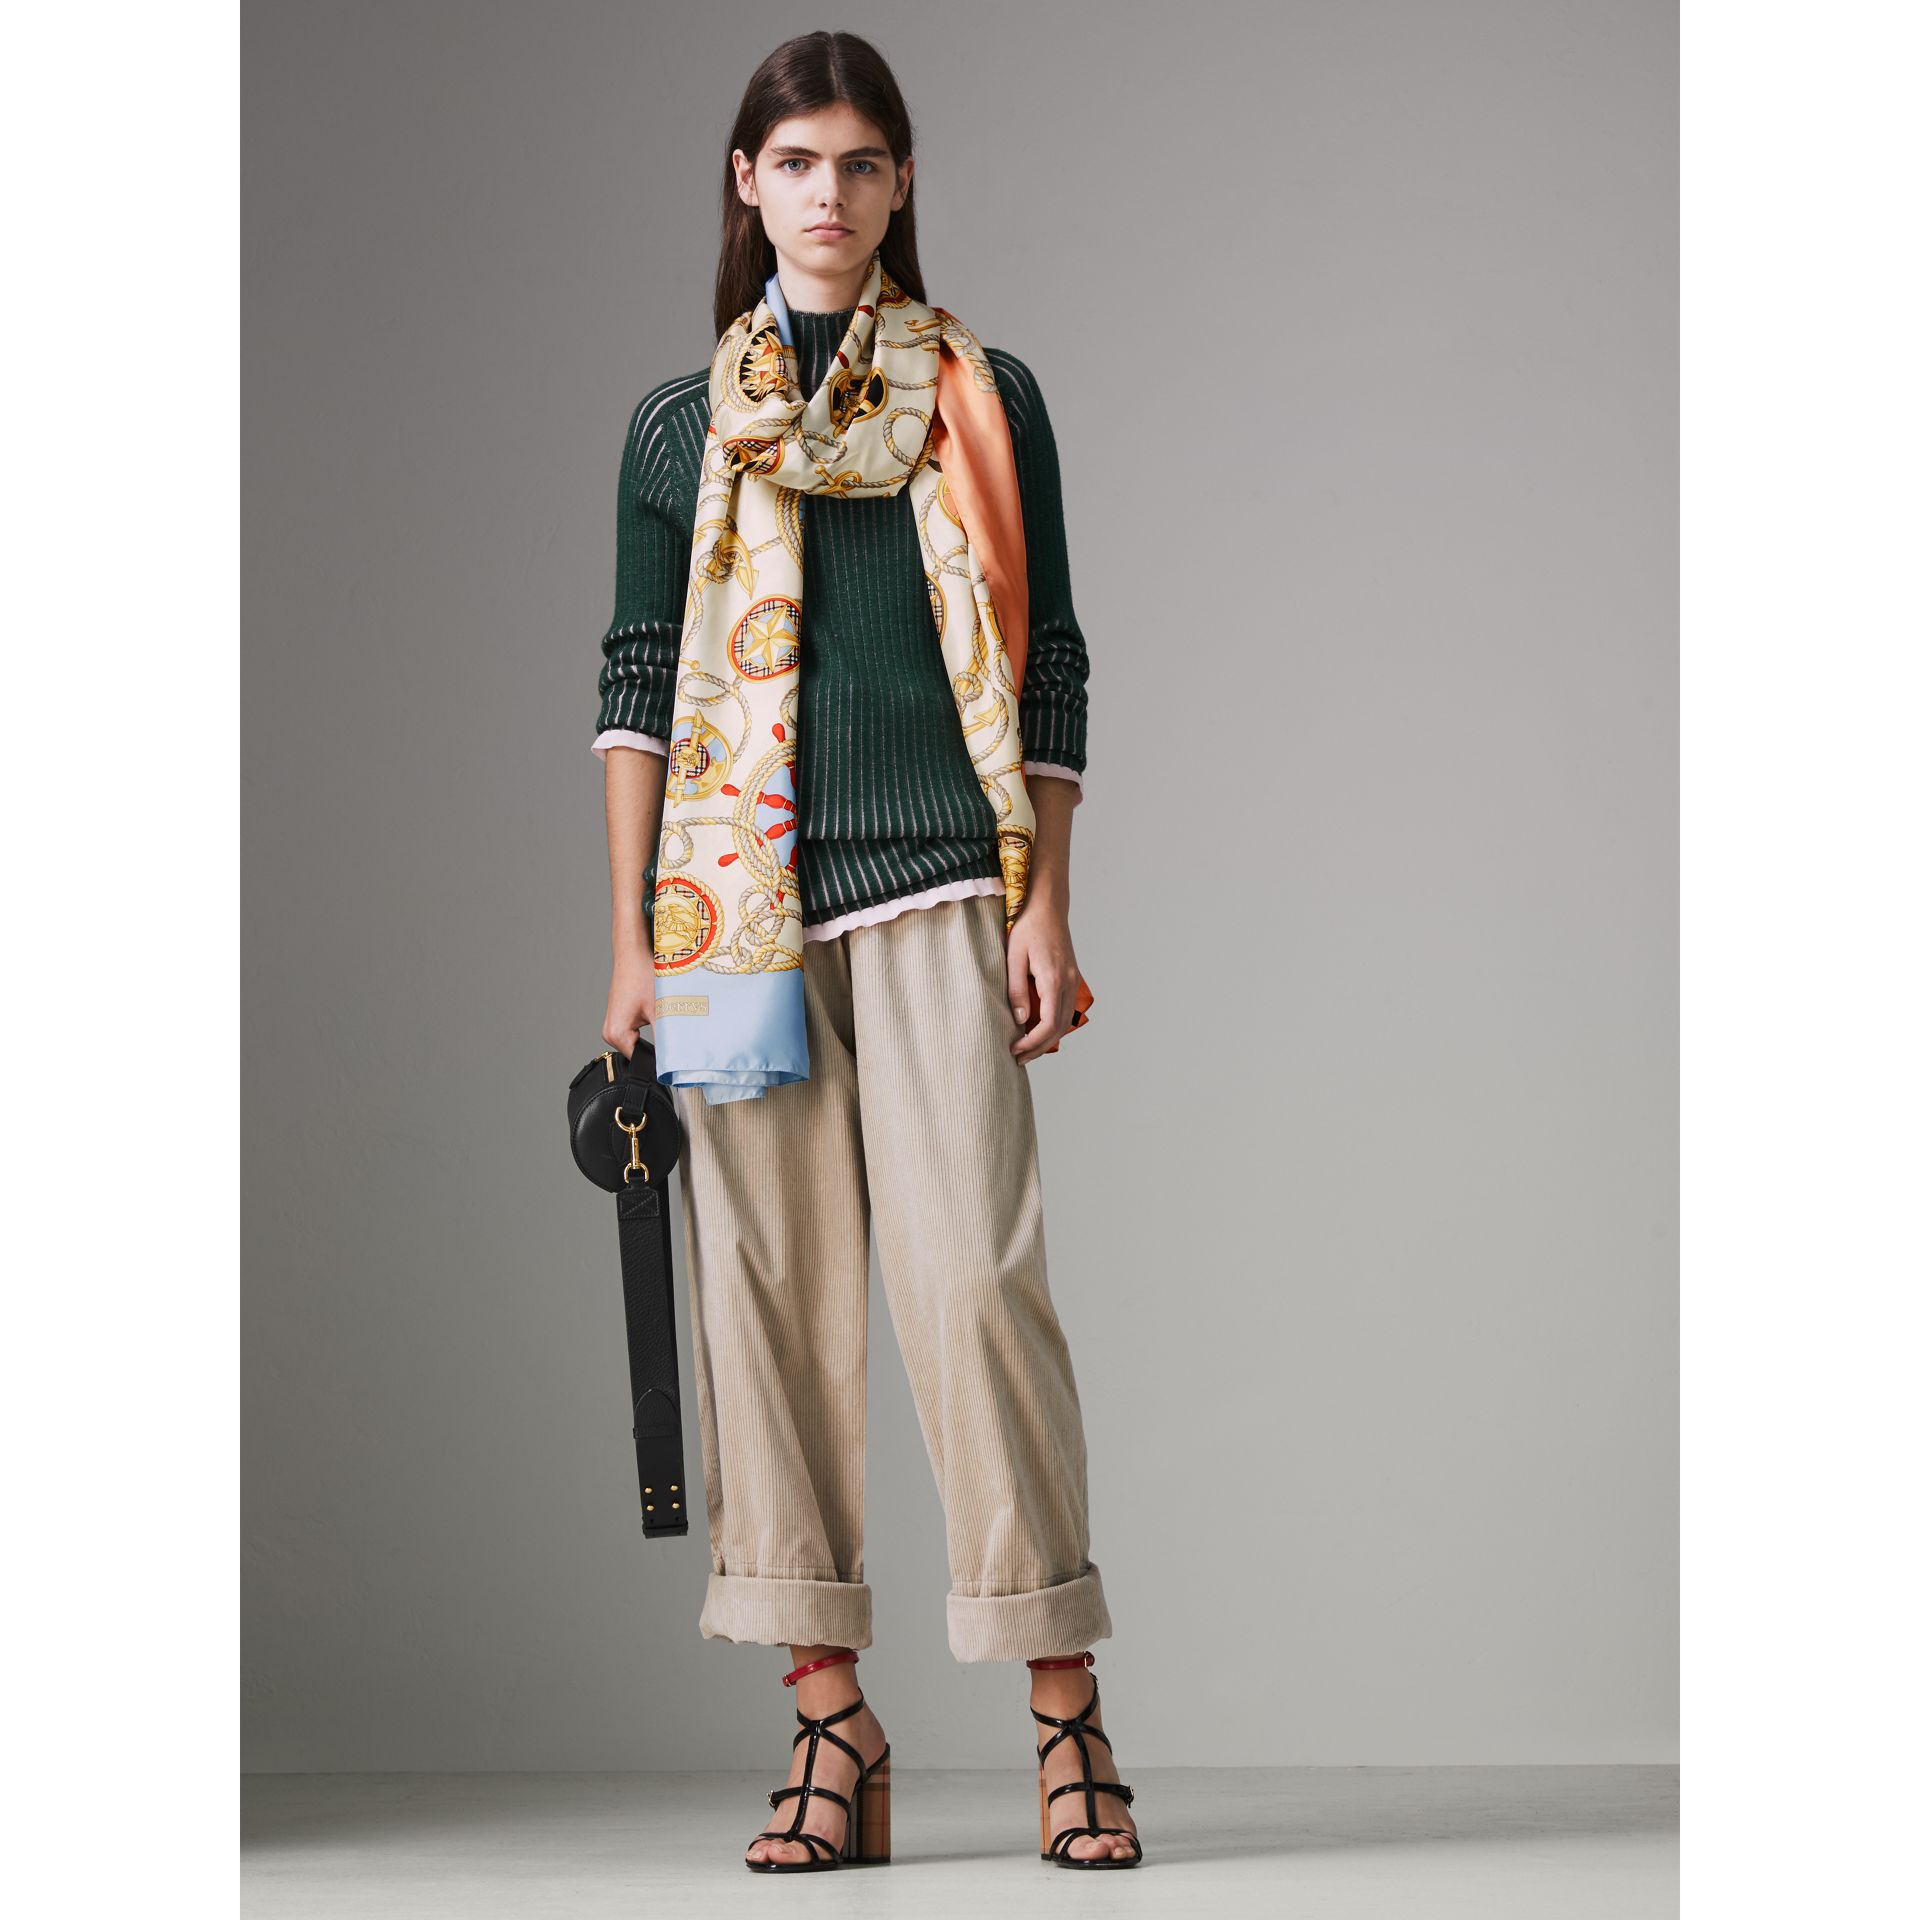 Archive Scarf Print Silk Oversized Scarf in Multicolour - Women | Burberry Singapore - gallery image 2